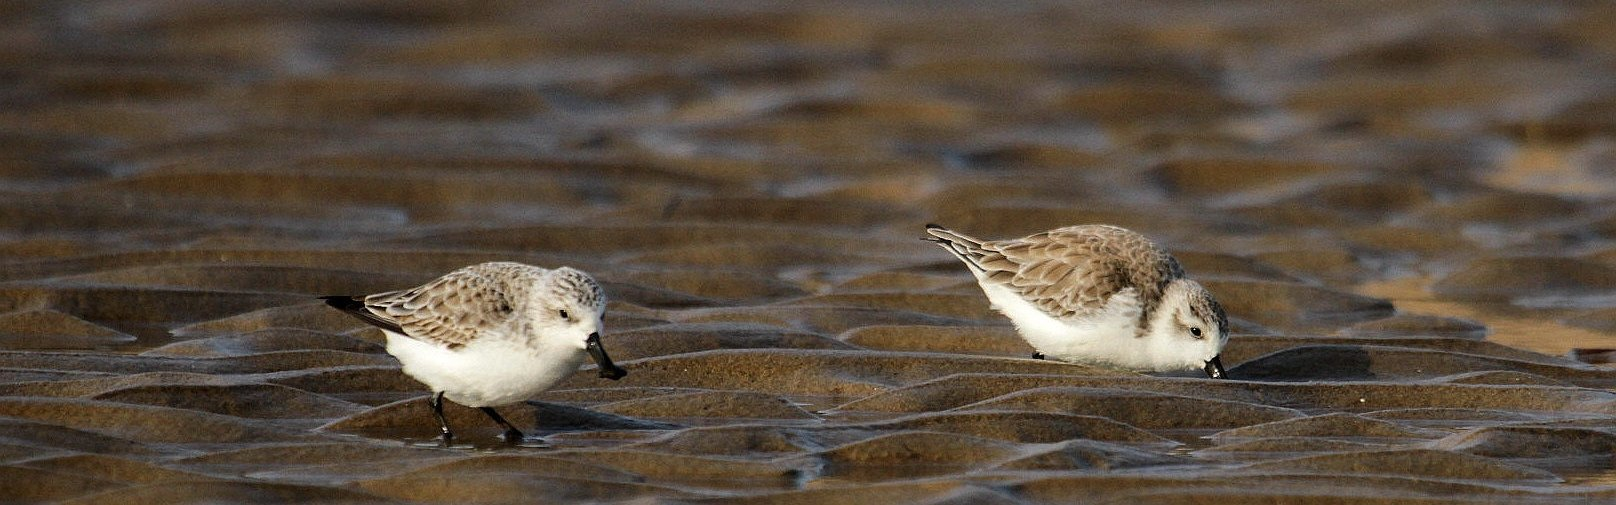 Spoon-billed Sandpiper - China Wild Tours